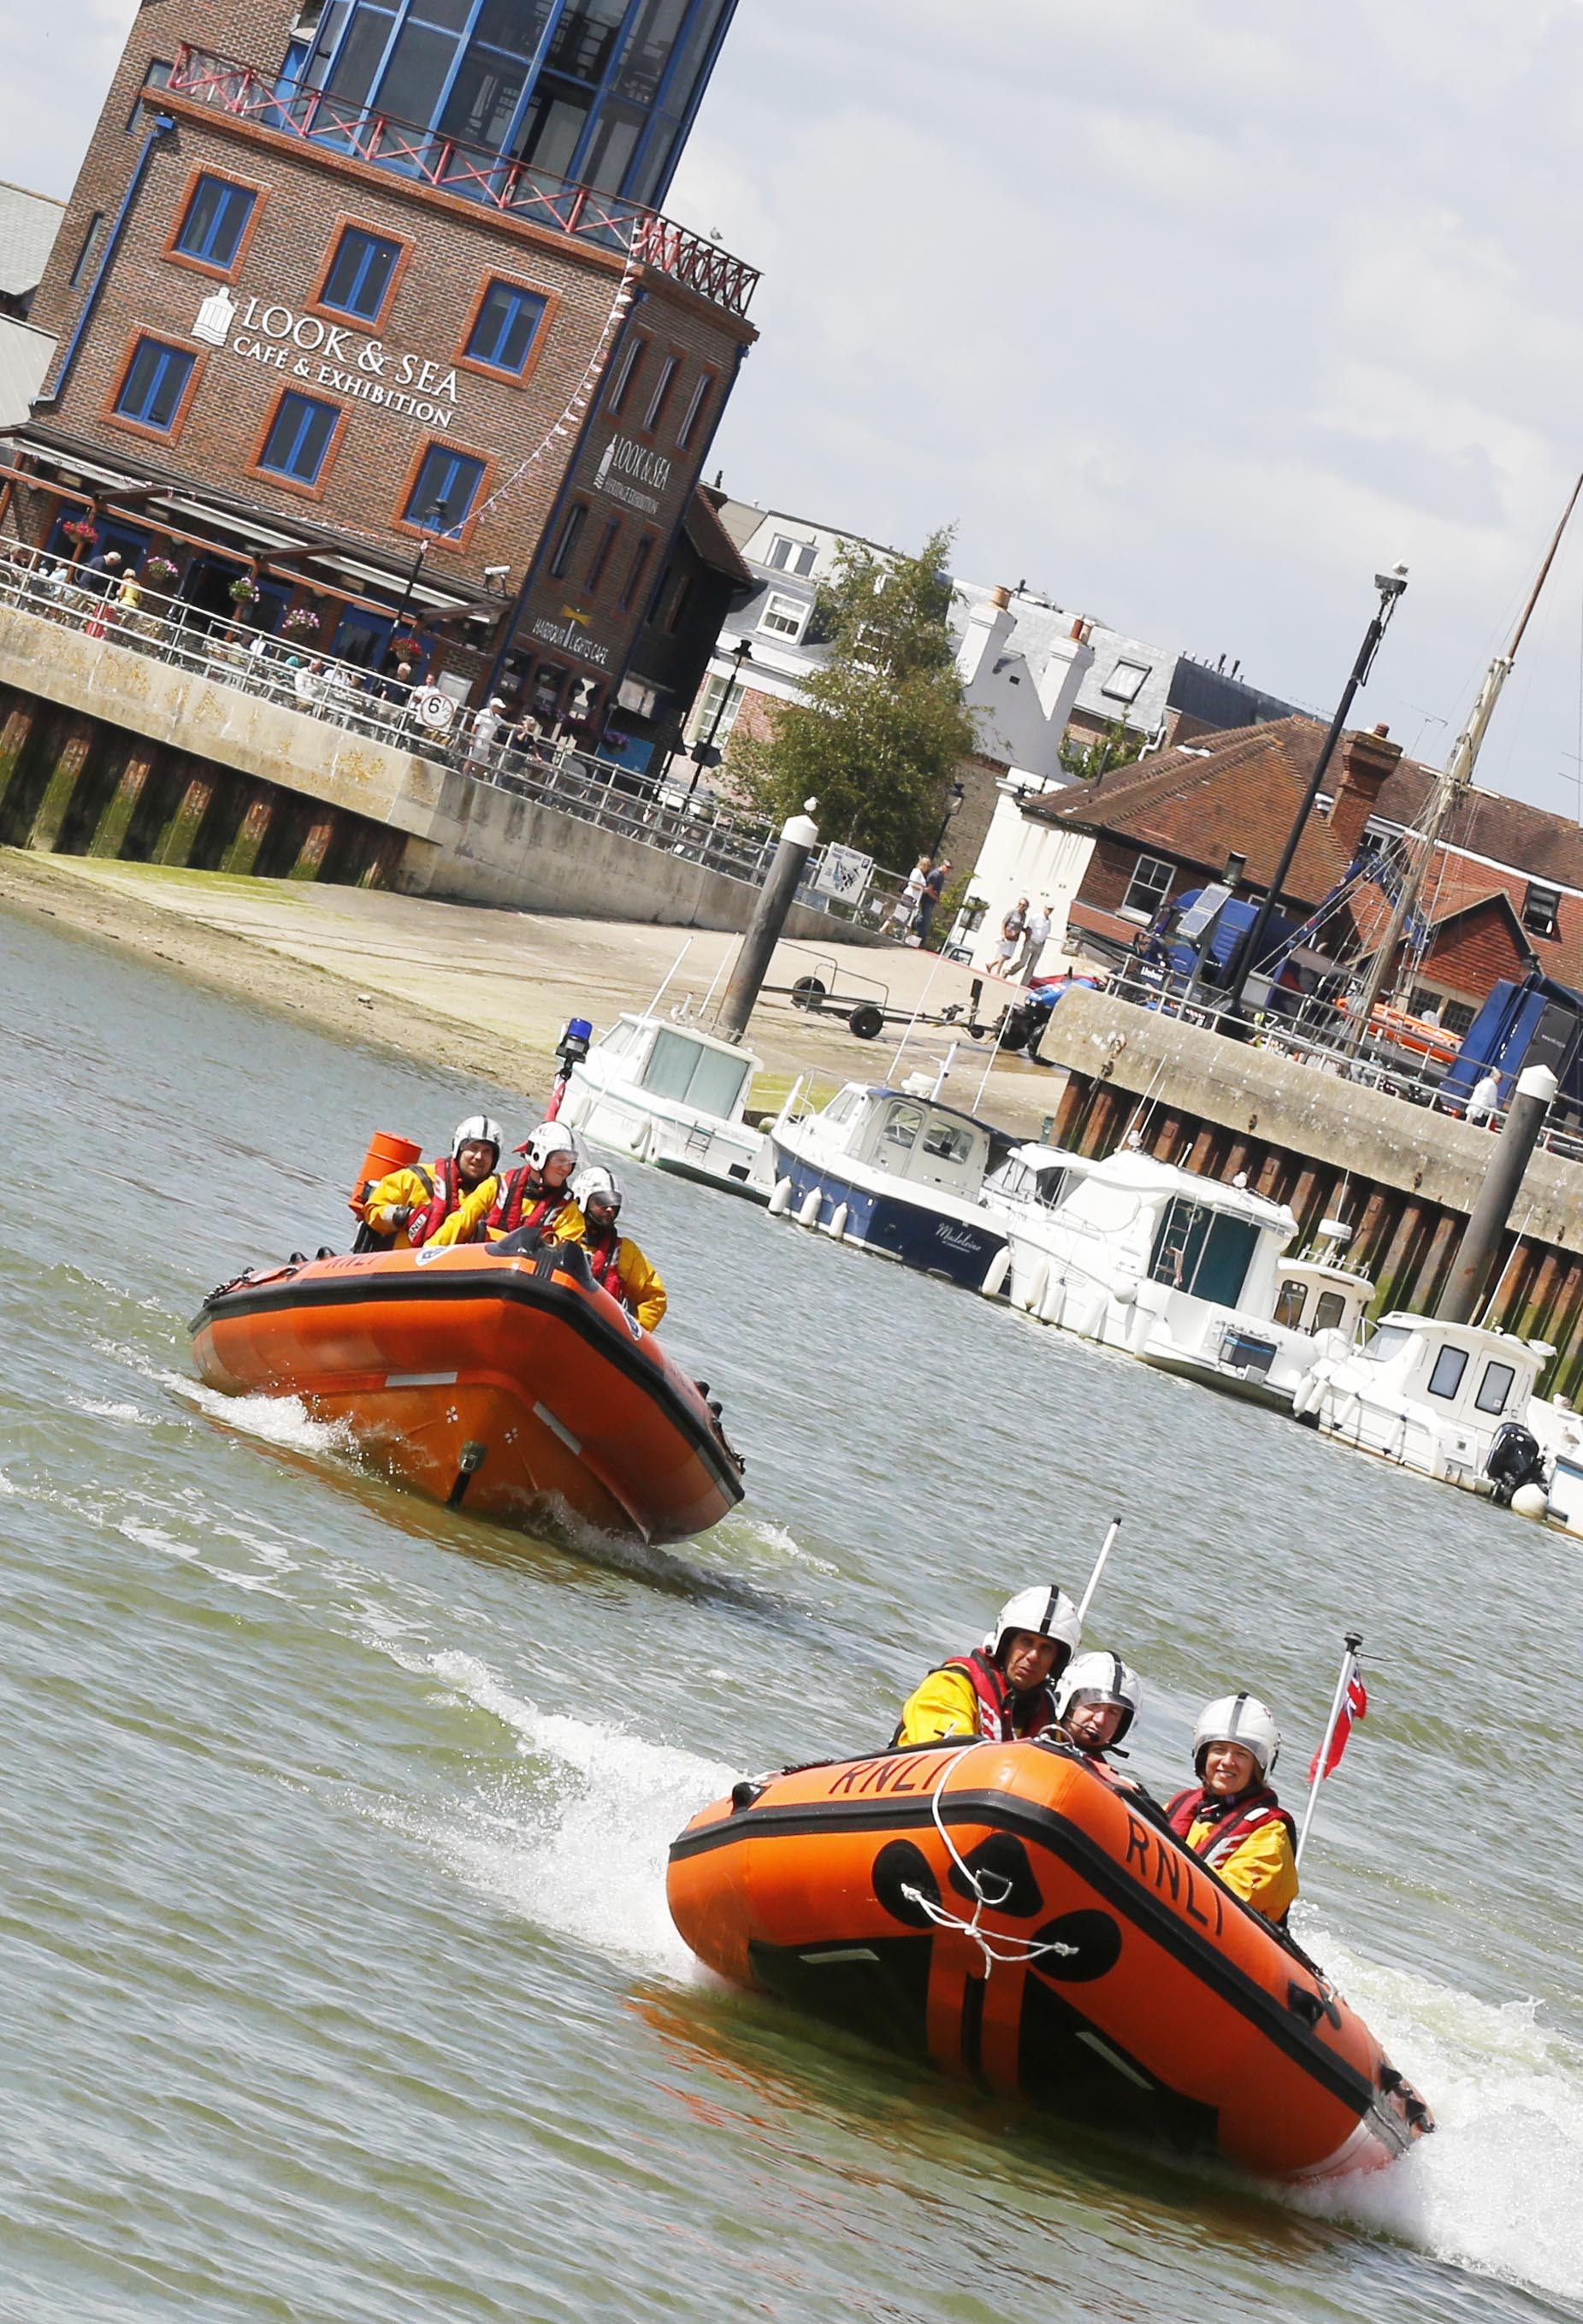 Both Littlehampton RNLI lifeboats leaving the station